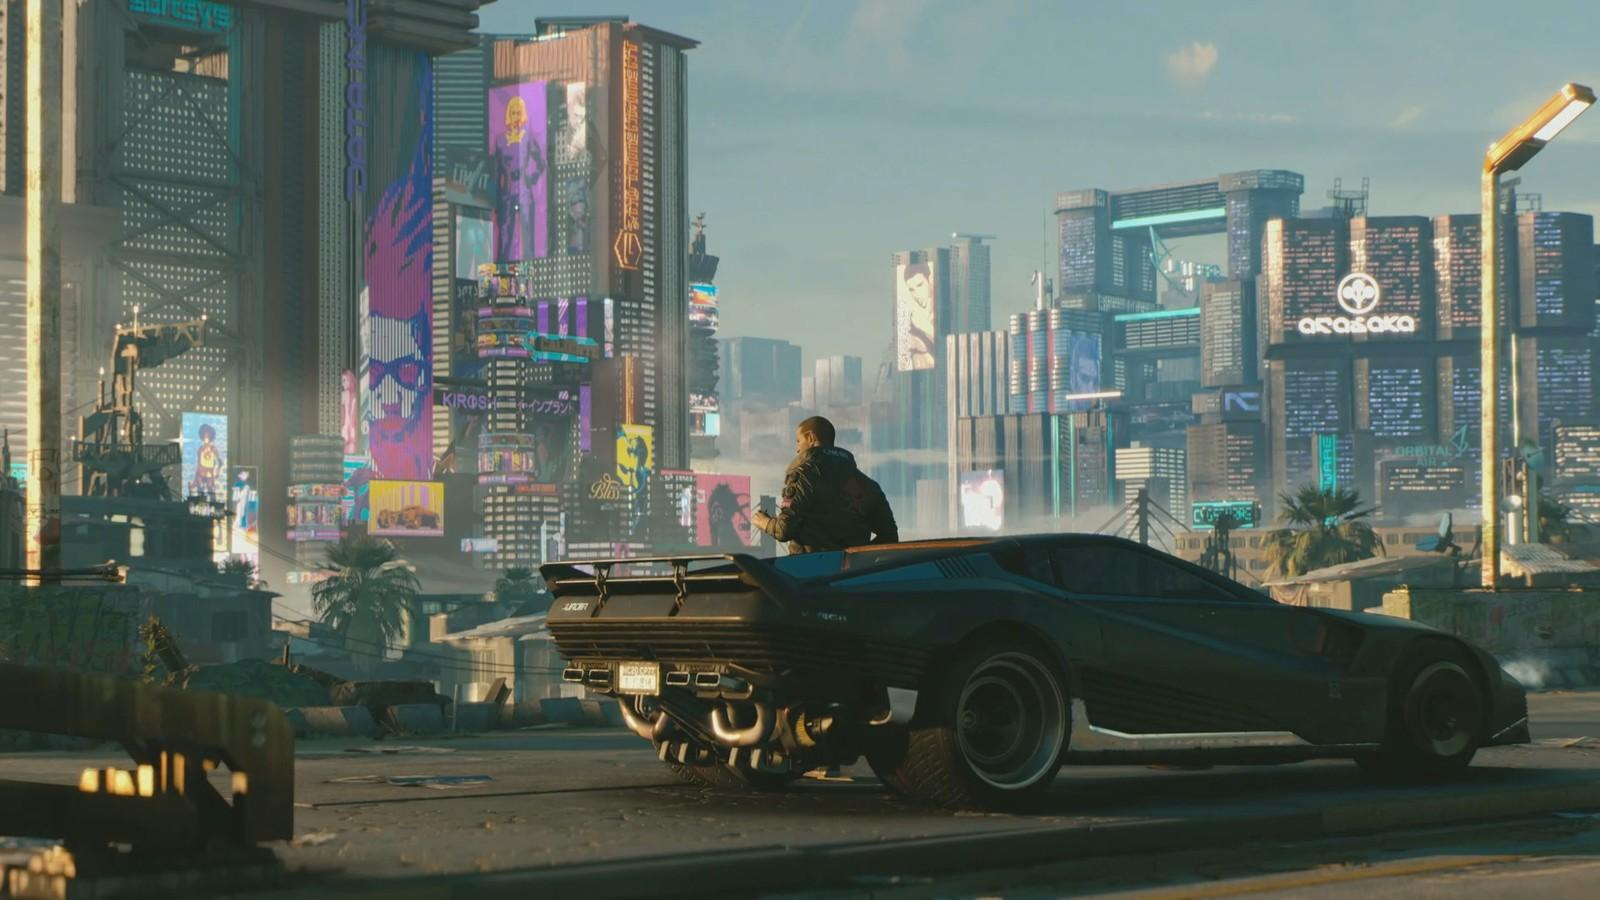 Cyberpunk 2077 looks amazing – although there's no firm release date as yet